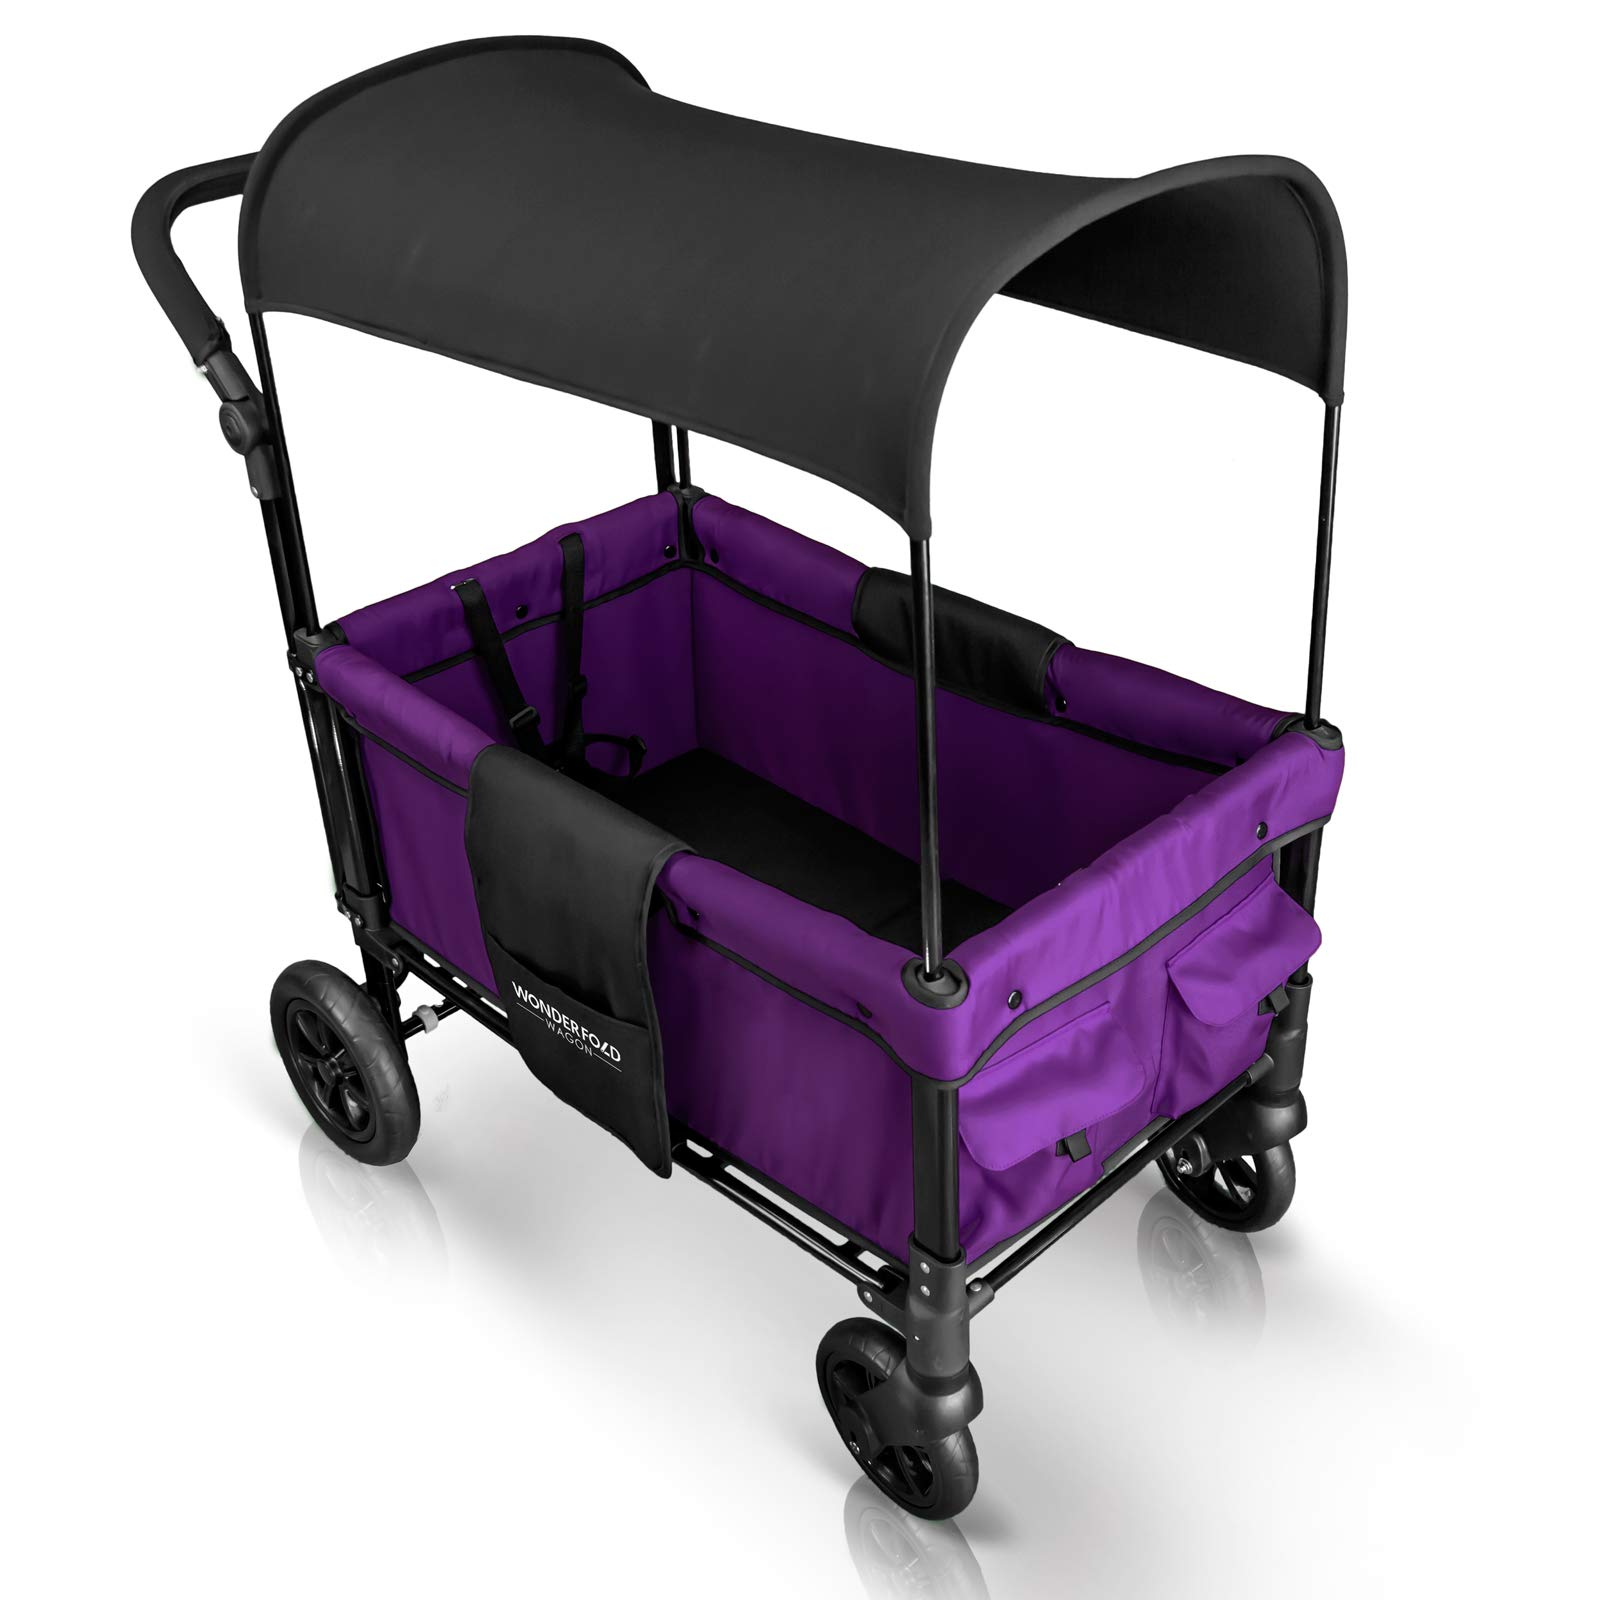 WonderFold Multi-Function 2 Passenger Push Folding Stroller Wagon, Adjustable & Removable Canopy, Double Seats with 5-Point Harness (Cobalt Violet) by WonderFold (Image #4)